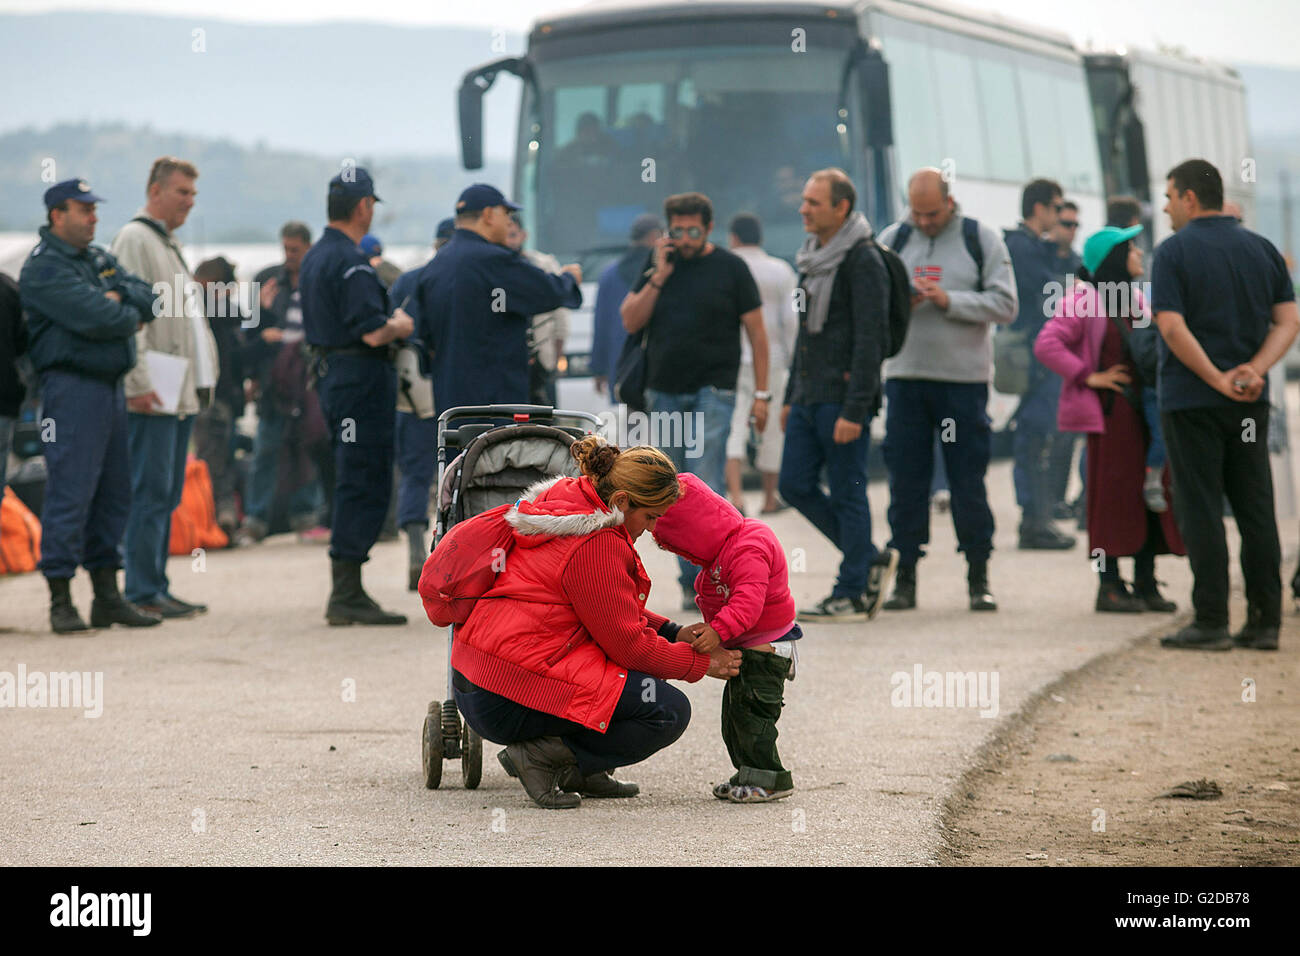 Beijing, China. 24th May, 2016. Refugees of Idomeni camp wait to be bused to other destinations at the border of - Stock Image